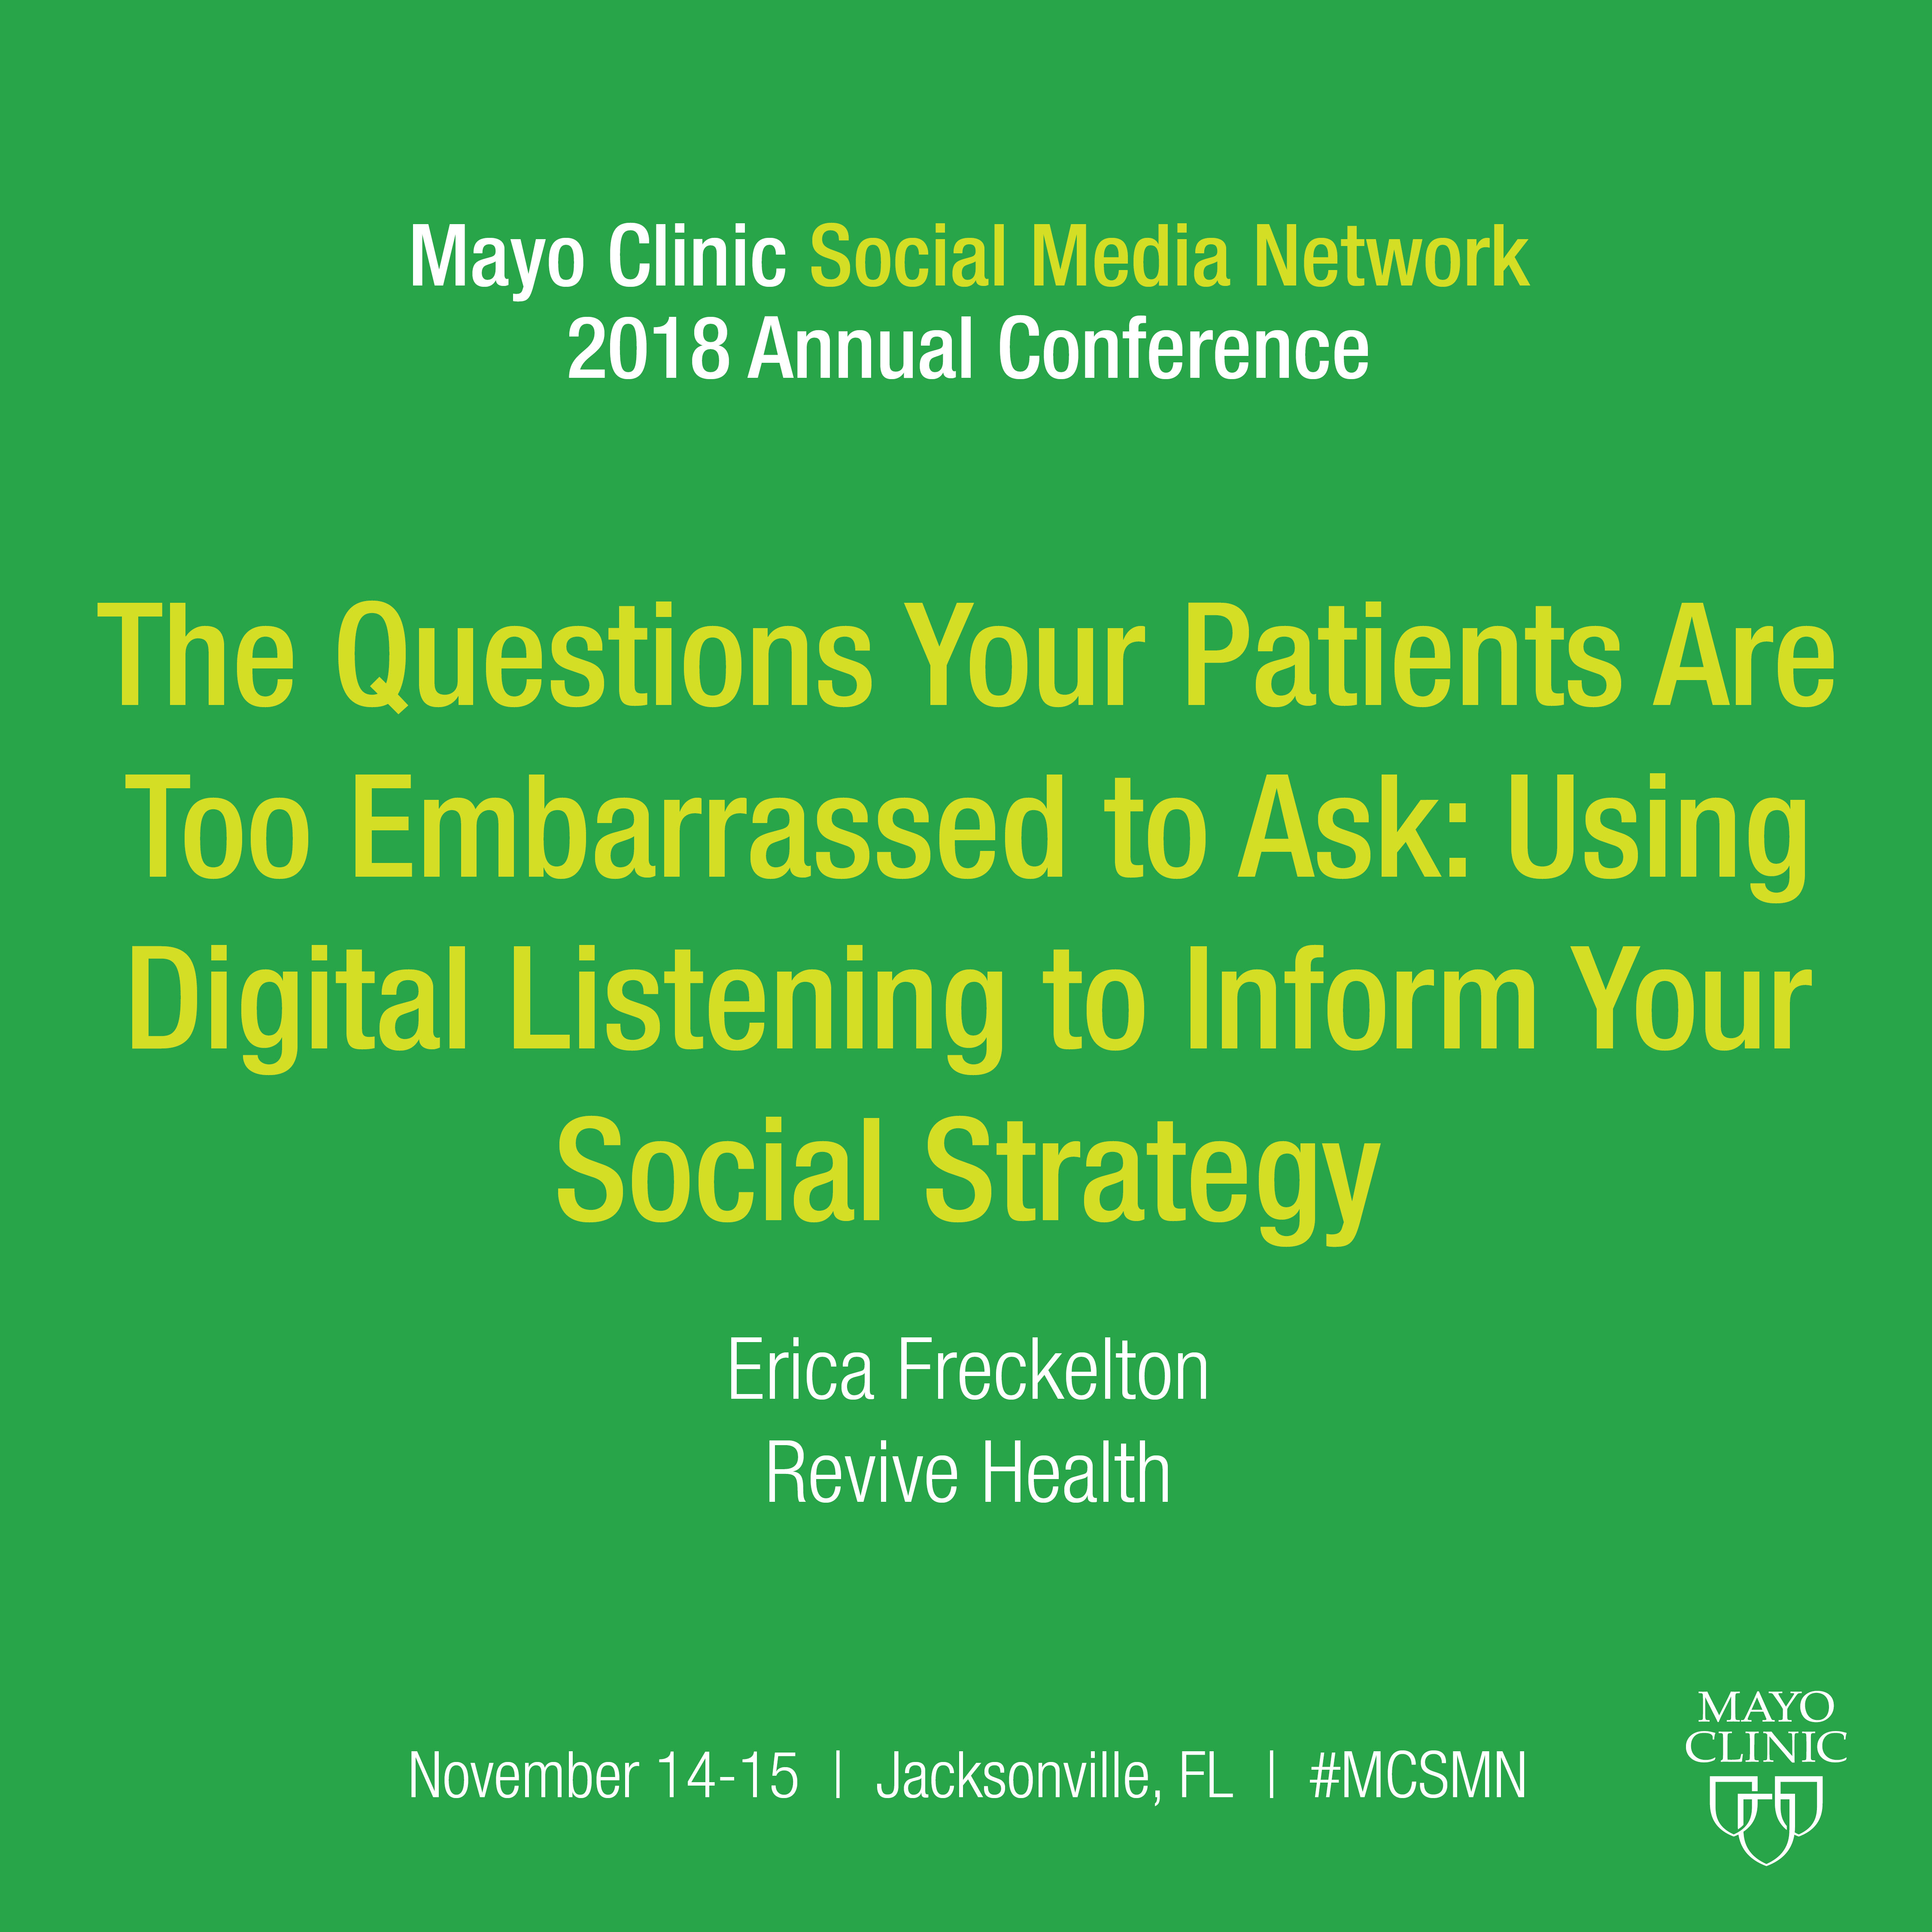 The Questions Your Patients Are Too Embarrassed to Ask: Using Digital Listening to Inform Your Social Strategy